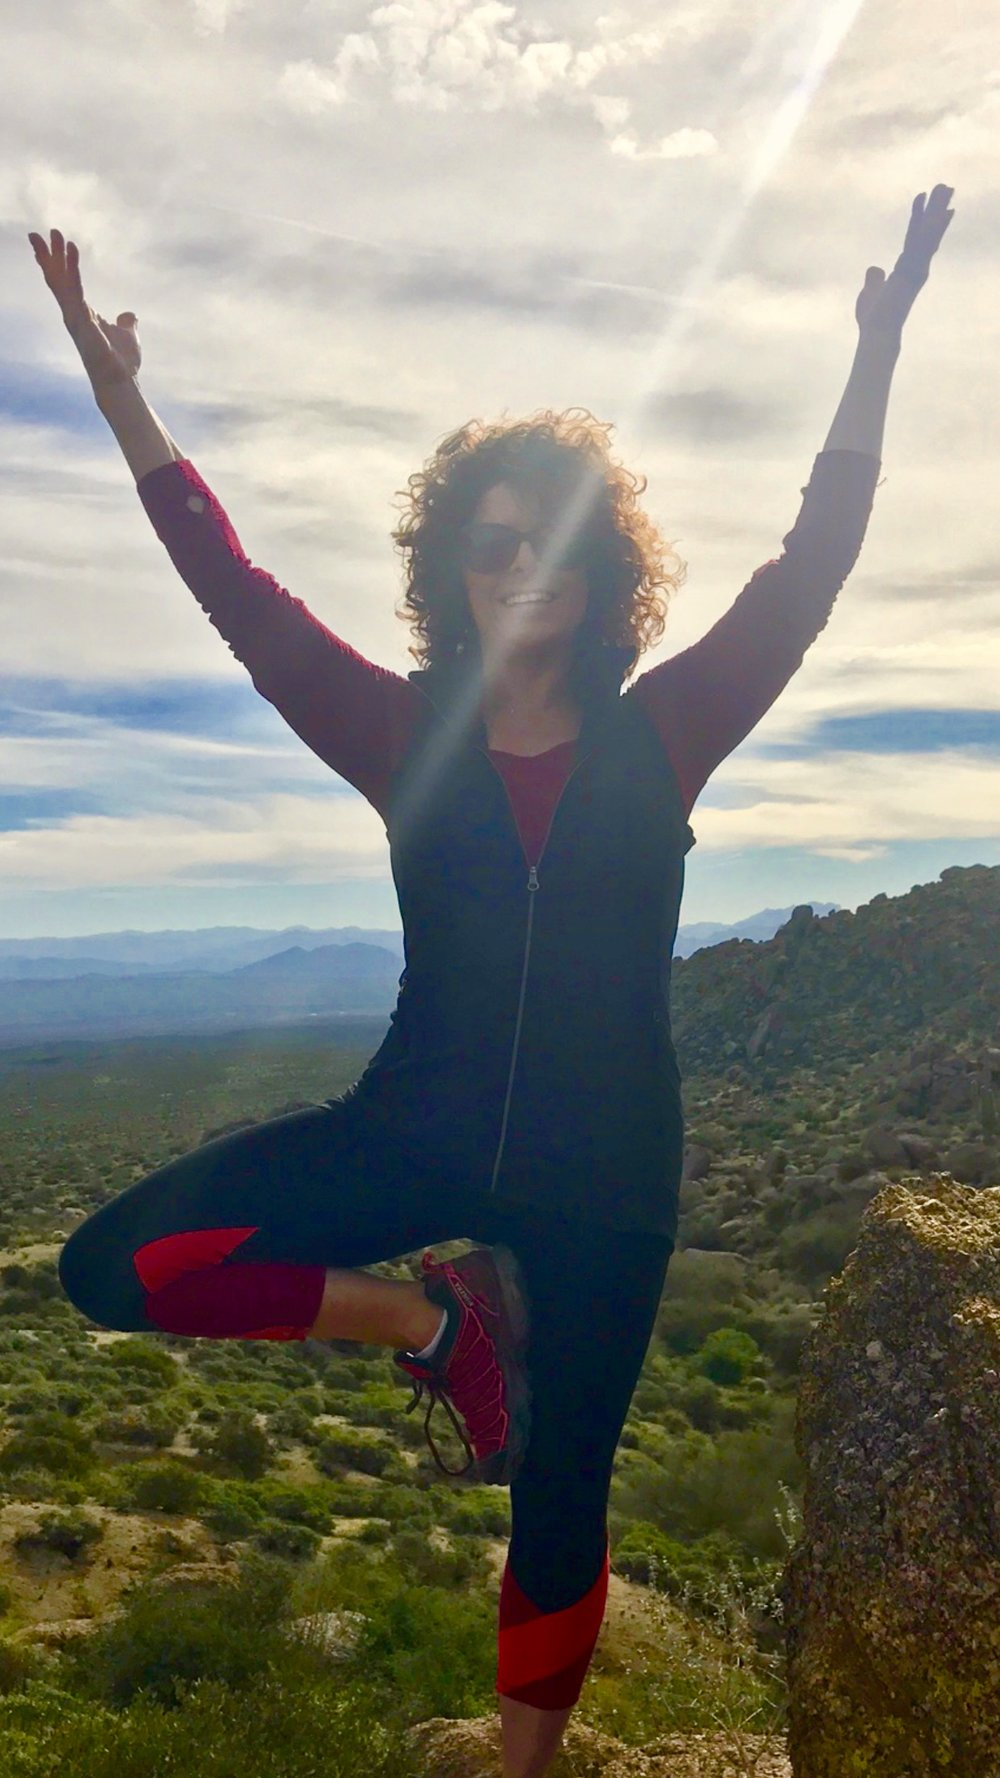 Amy Multack: Yoga Instructor & Wellness Advocate